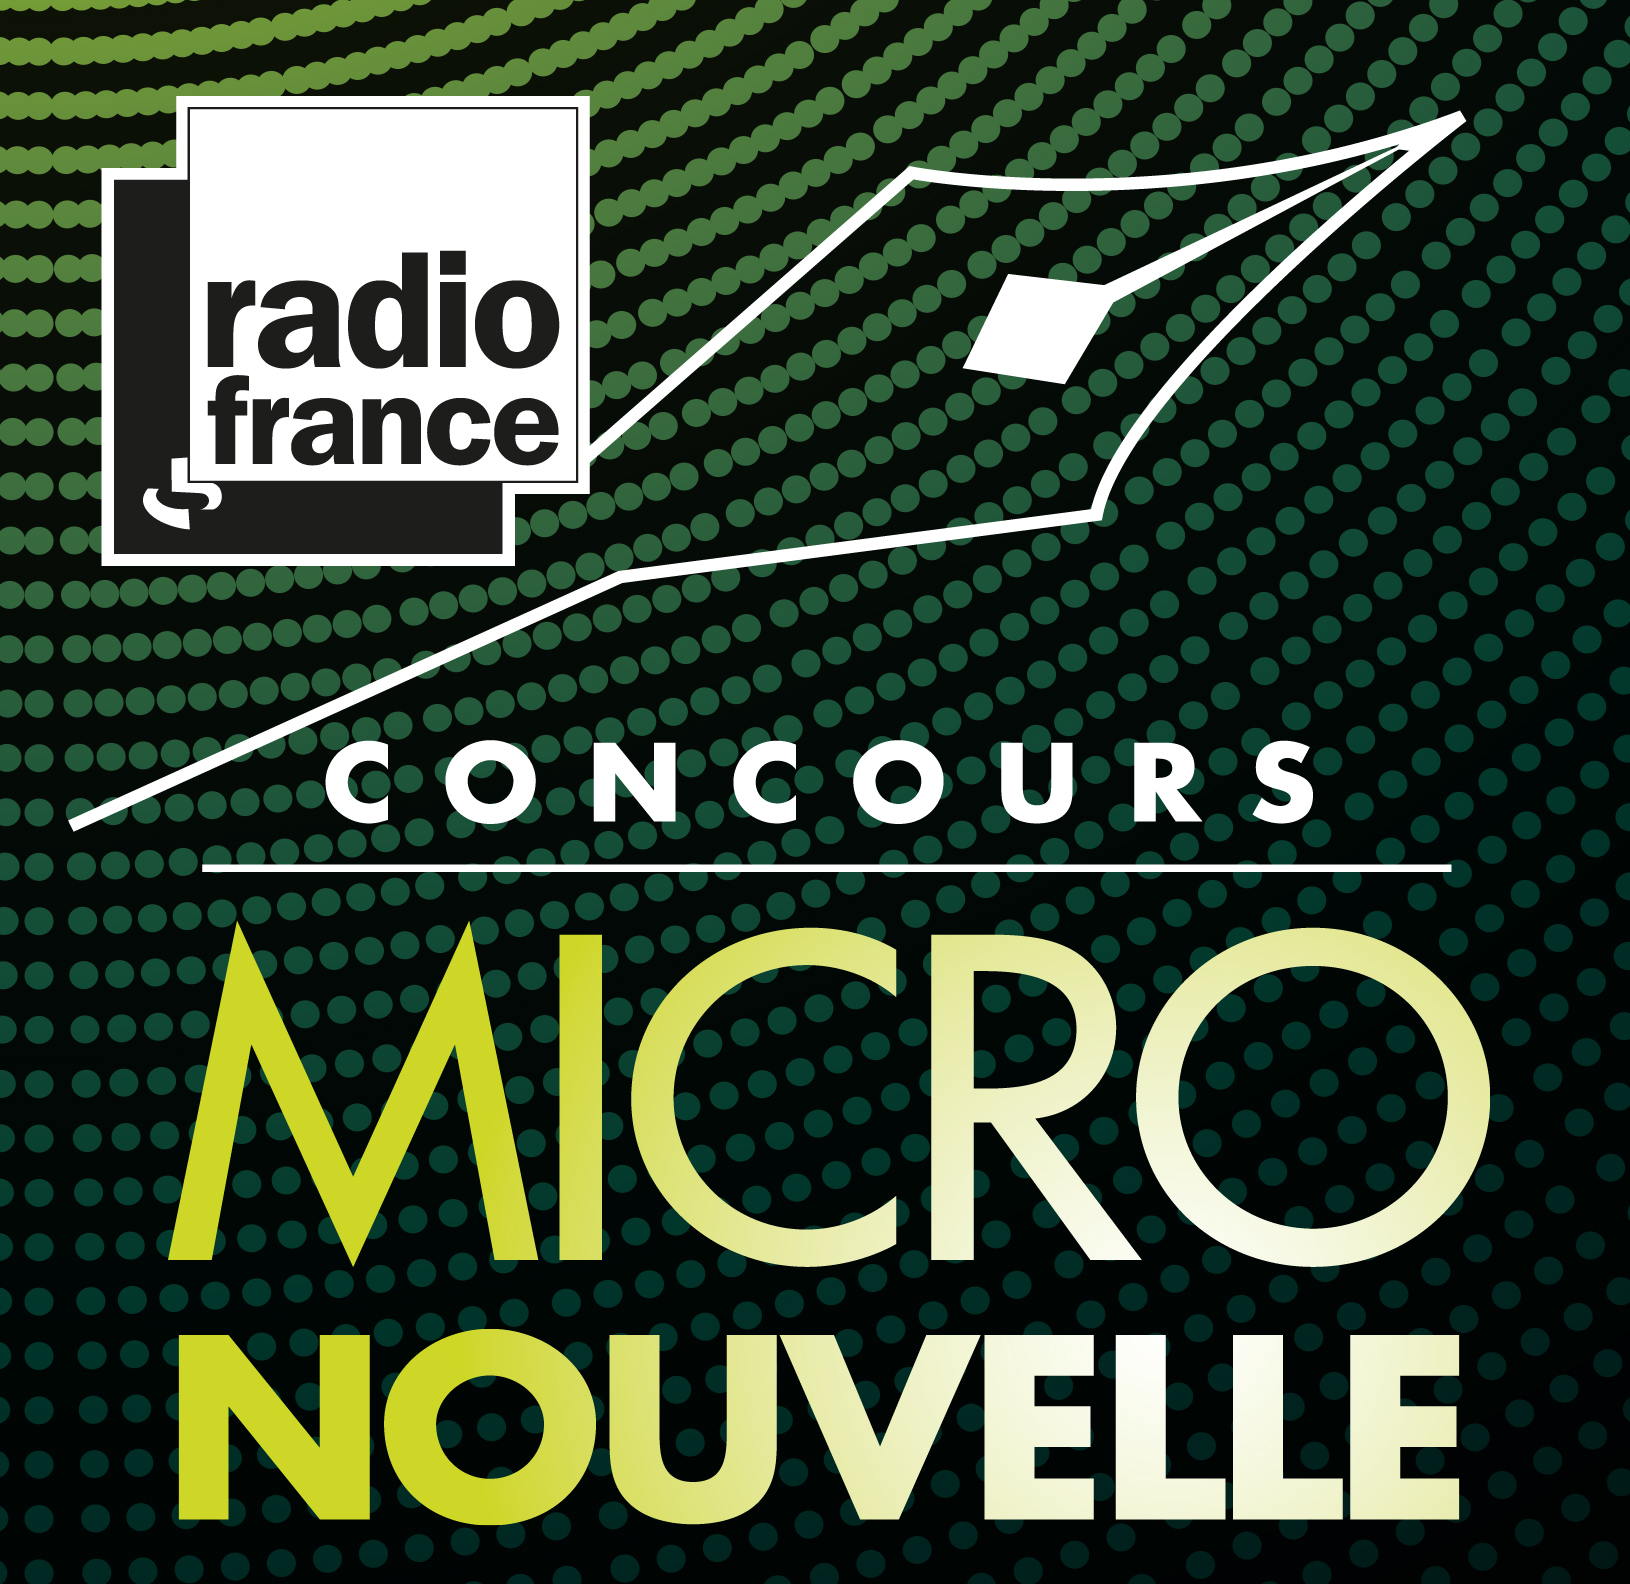 Micronouvelle radiofrance